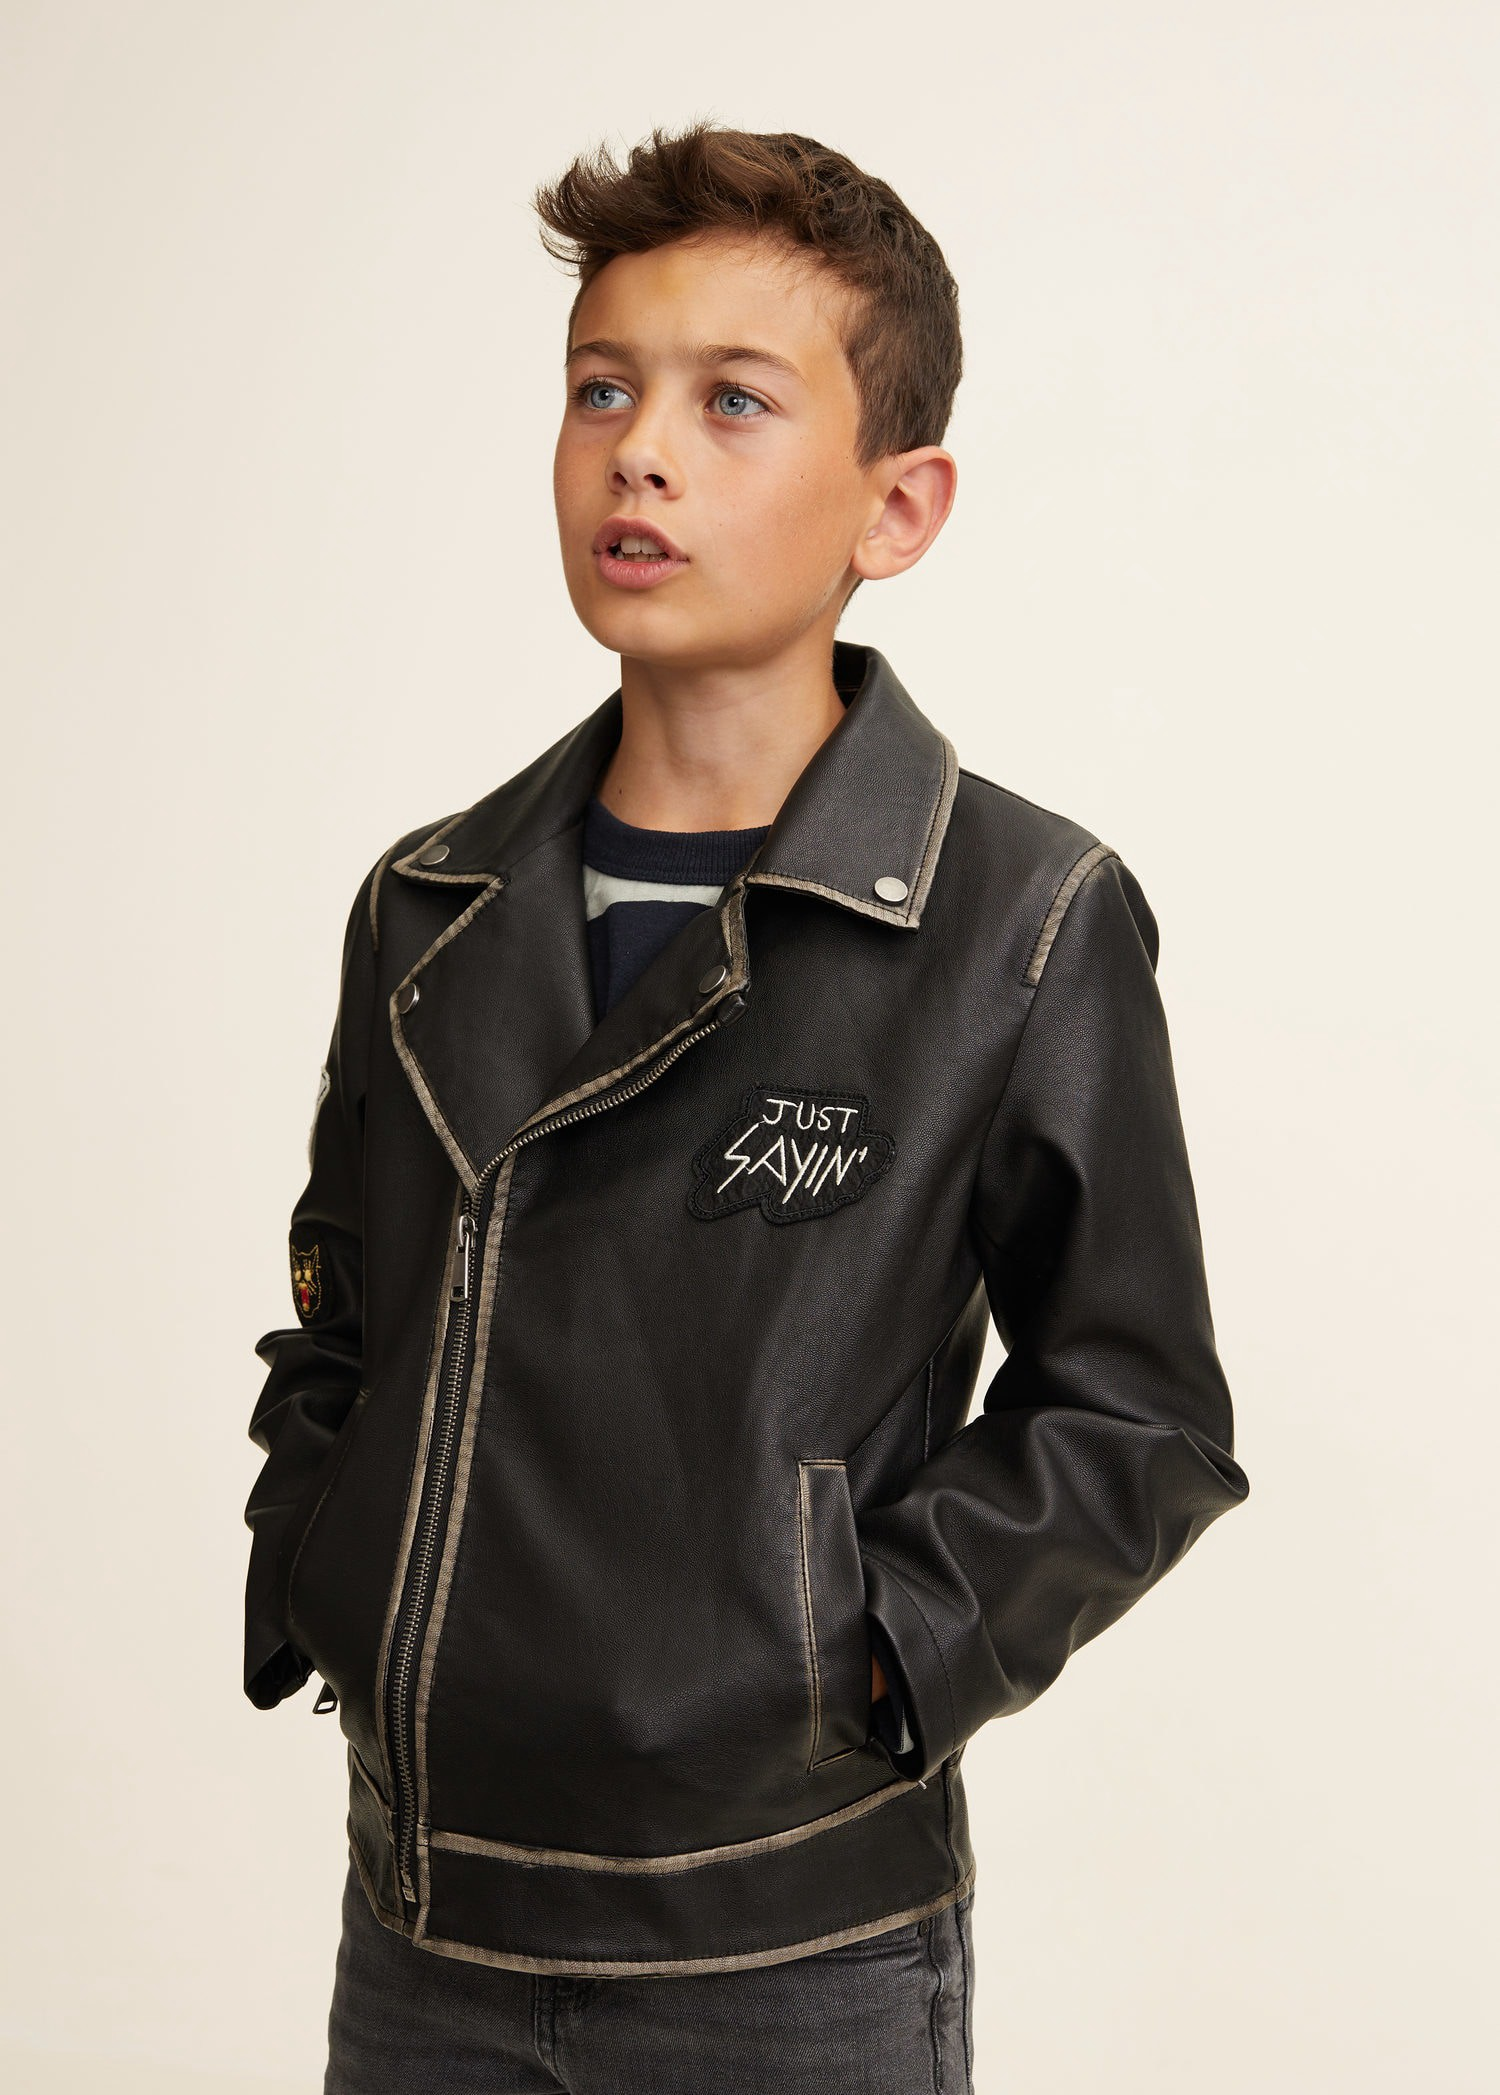 Mango Patched Biker Jacket 11 12 Years 152cm Jackets Leather Outfit Boys Jacket [ 2095 x 1500 Pixel ]